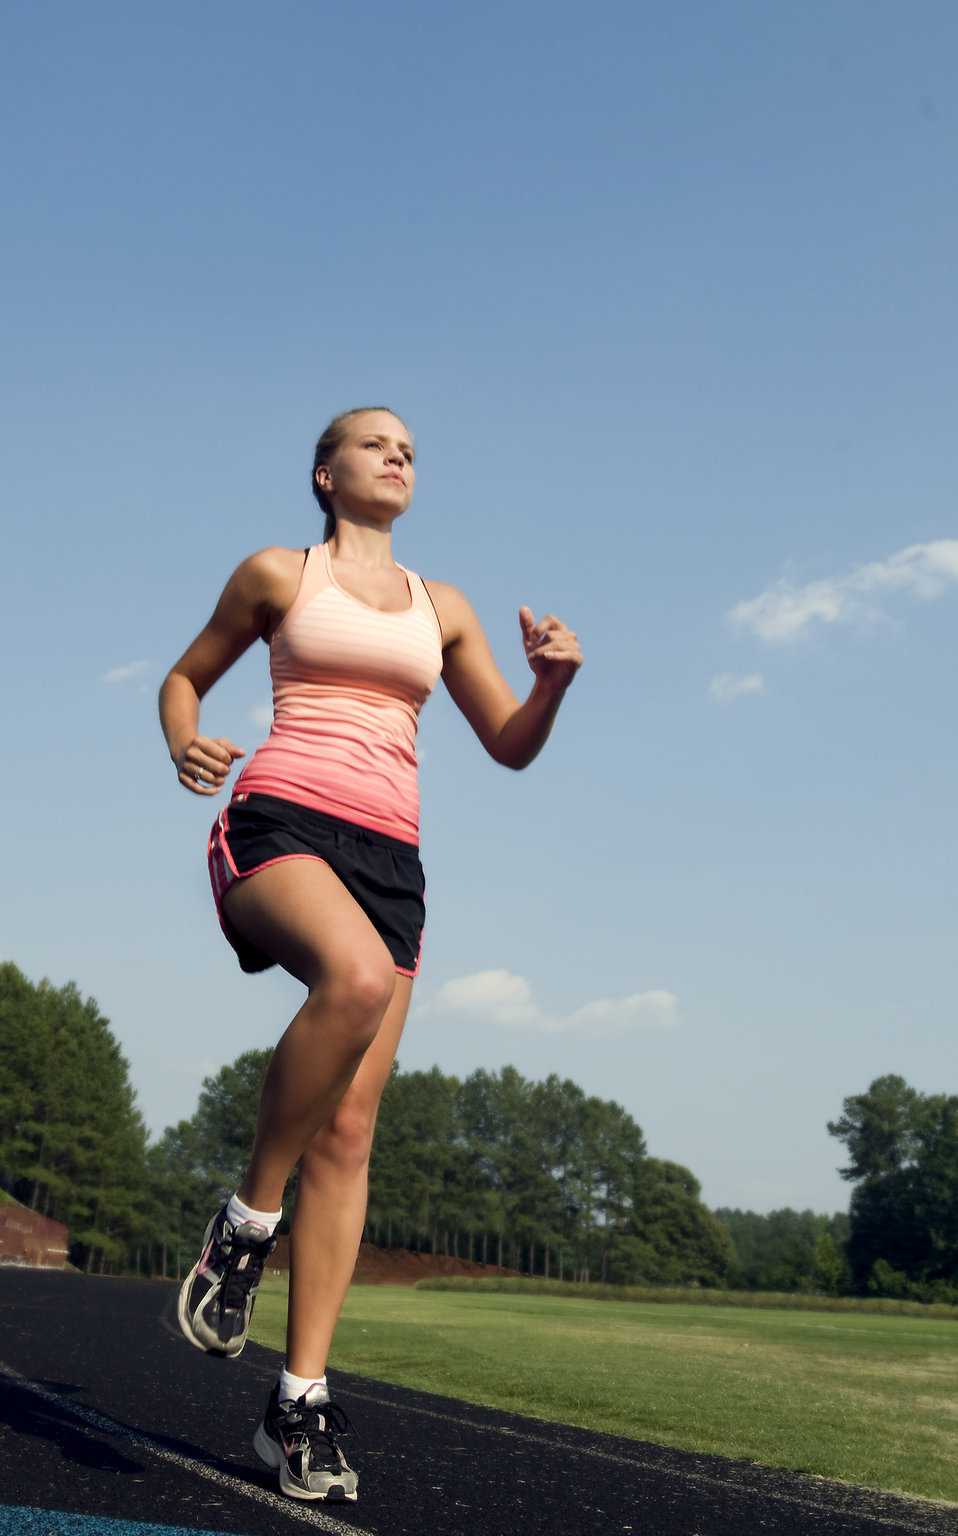 A healthy young woman running outdoors on a track : Free Stock Photo